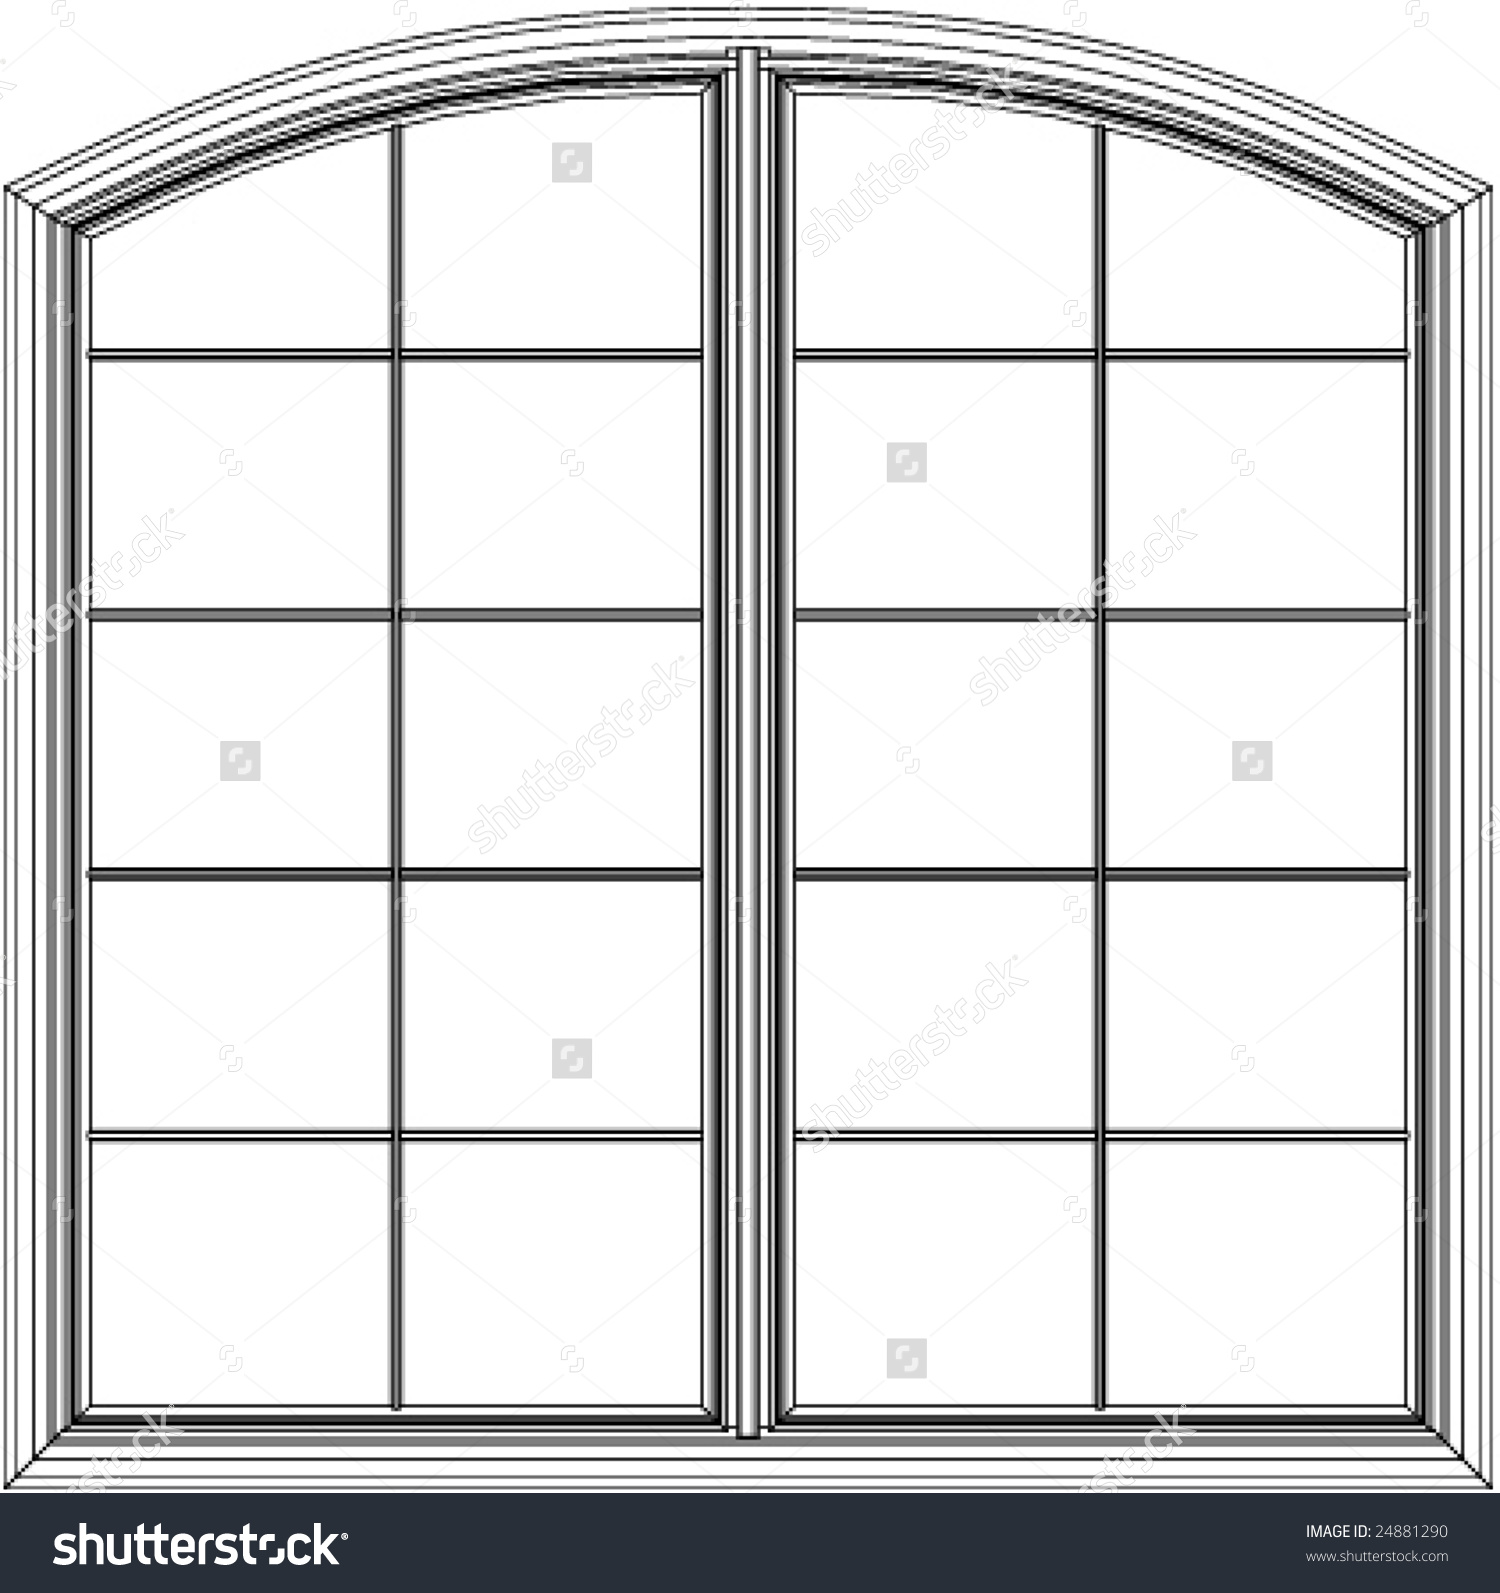 Archtop Casement Window Stock Vector 24881290.